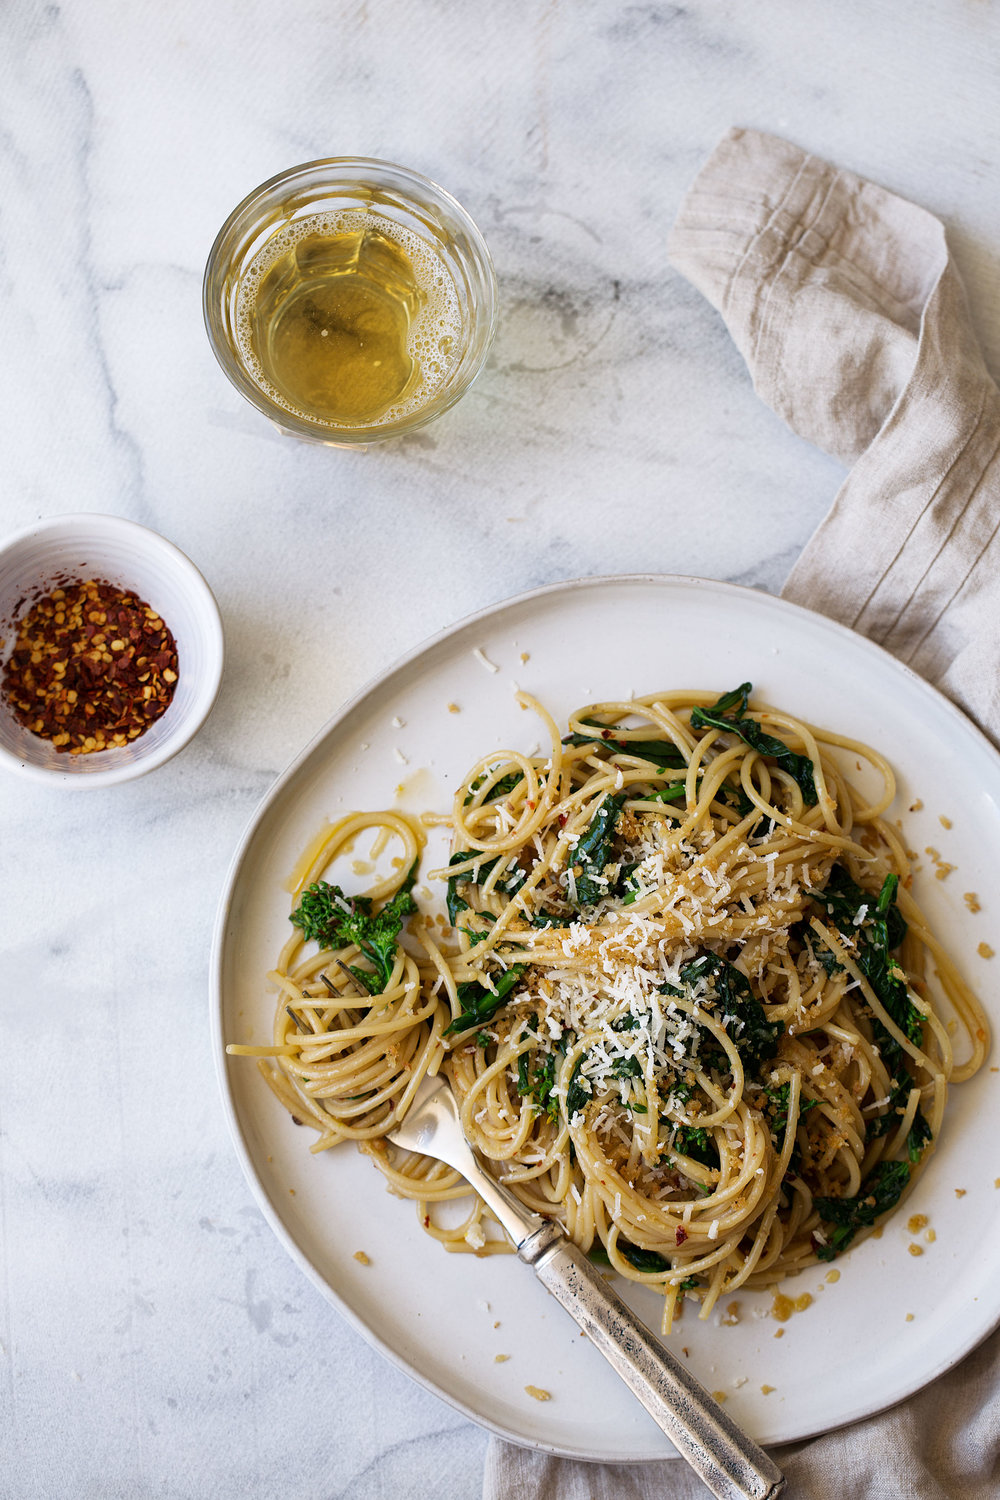 In this rapini pasta recipe spaghetti is tossed with rapini, anchovies & chili oil for an easy twist on aglio e olio and weeknight dinner.